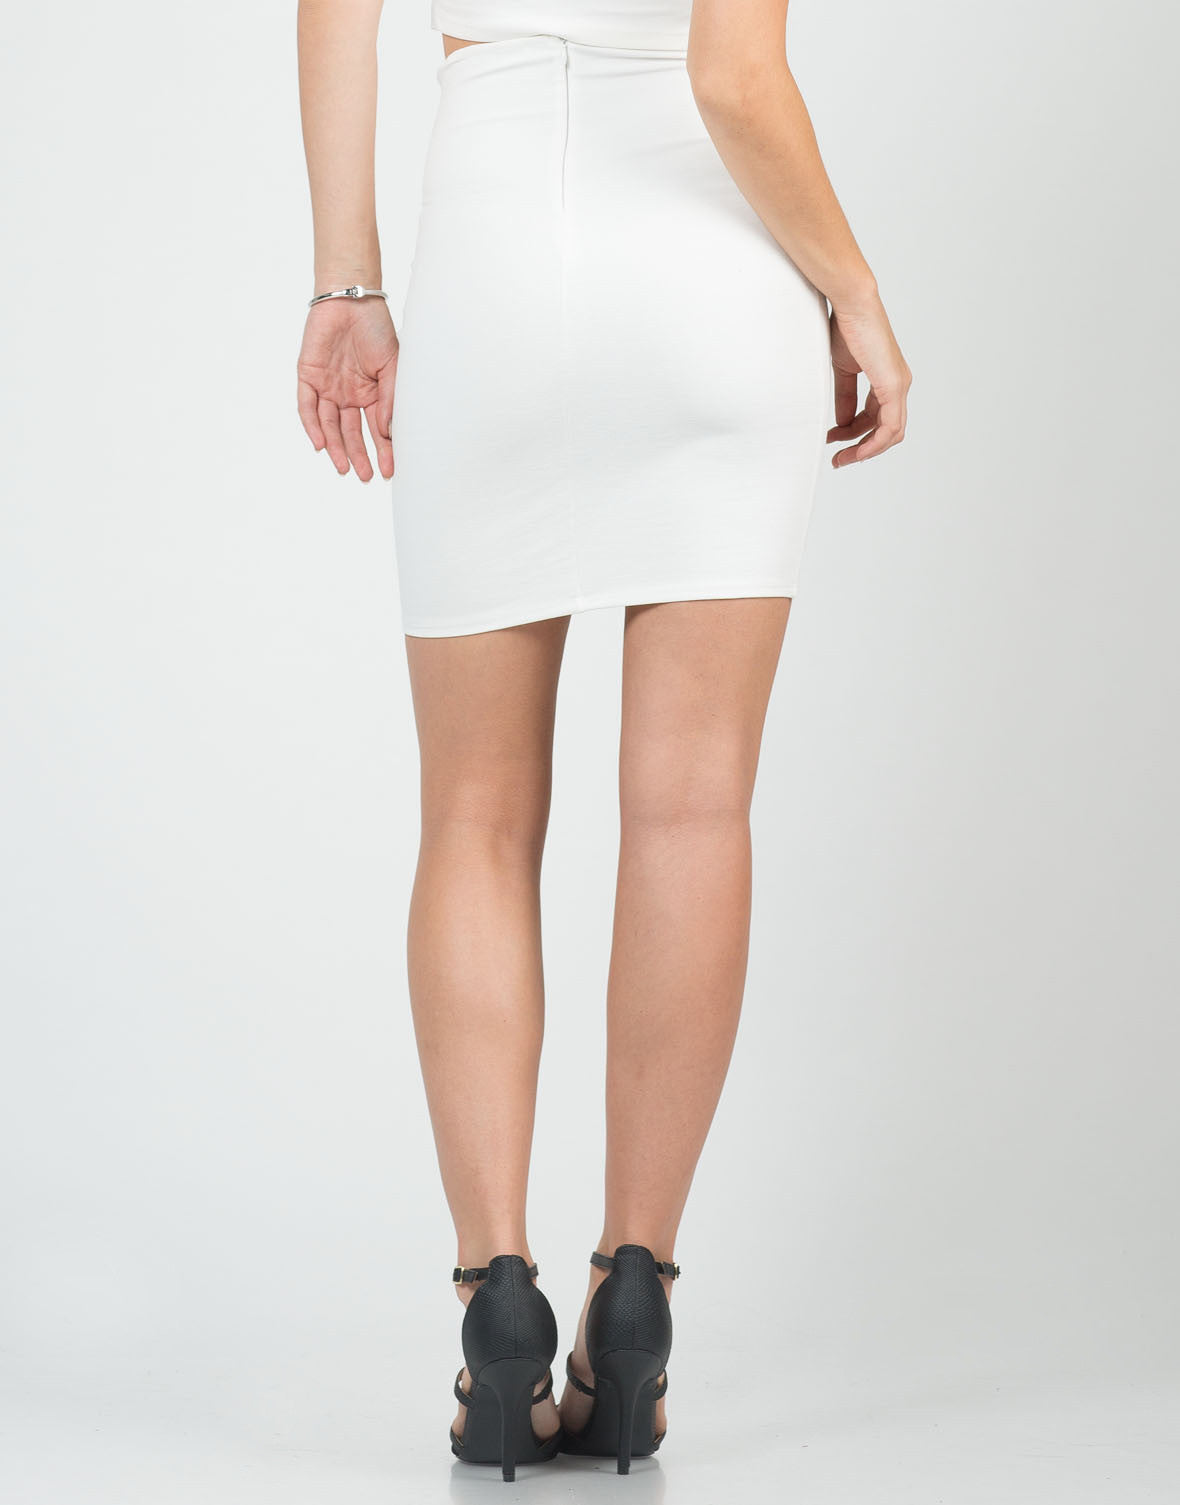 Back View of Classic High Waisted Pencil Skirt